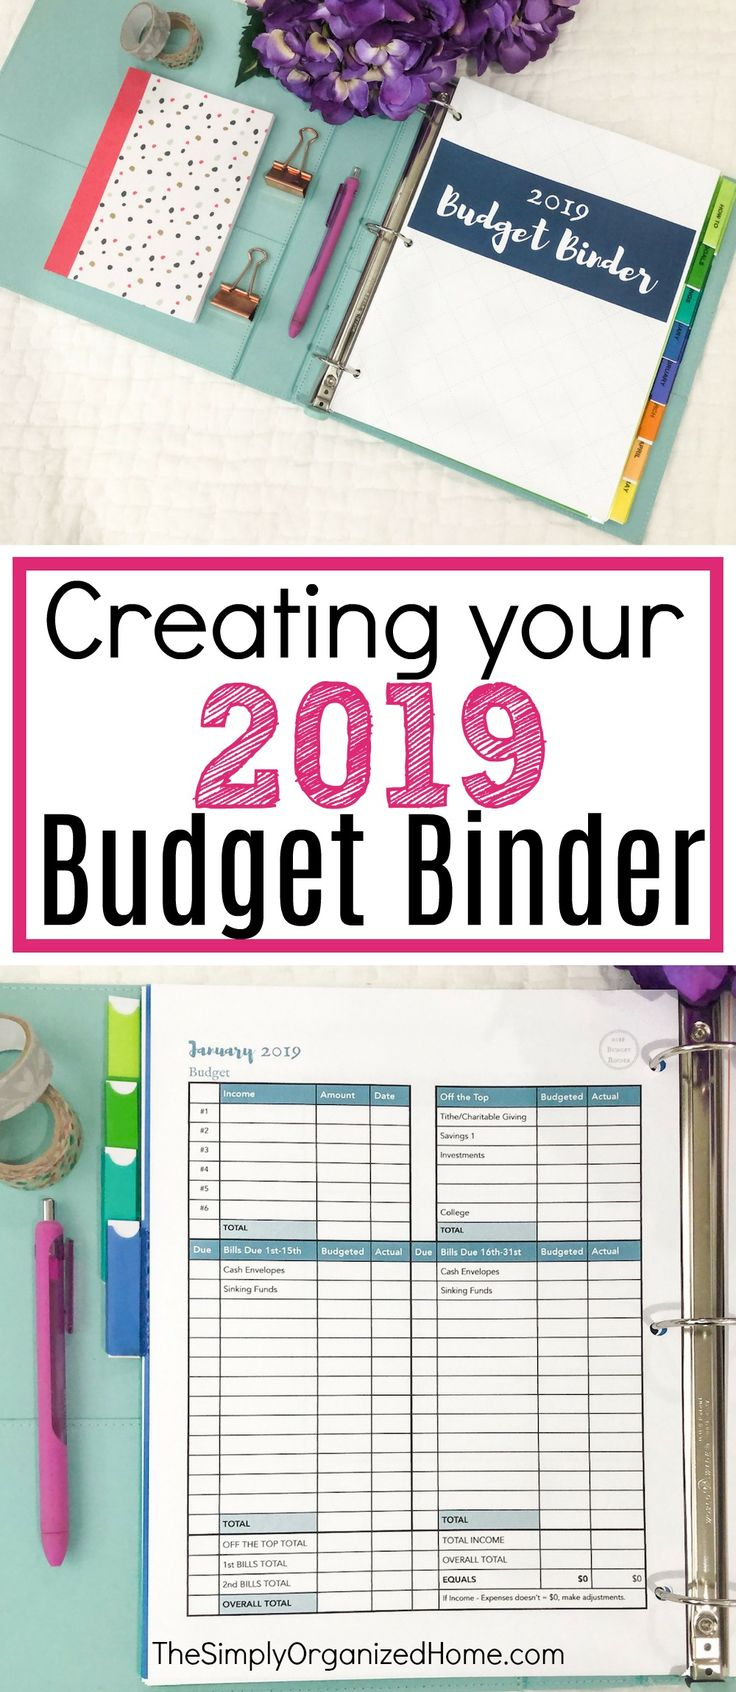 Creating Your 2019 Budget Binder Budgeting finances